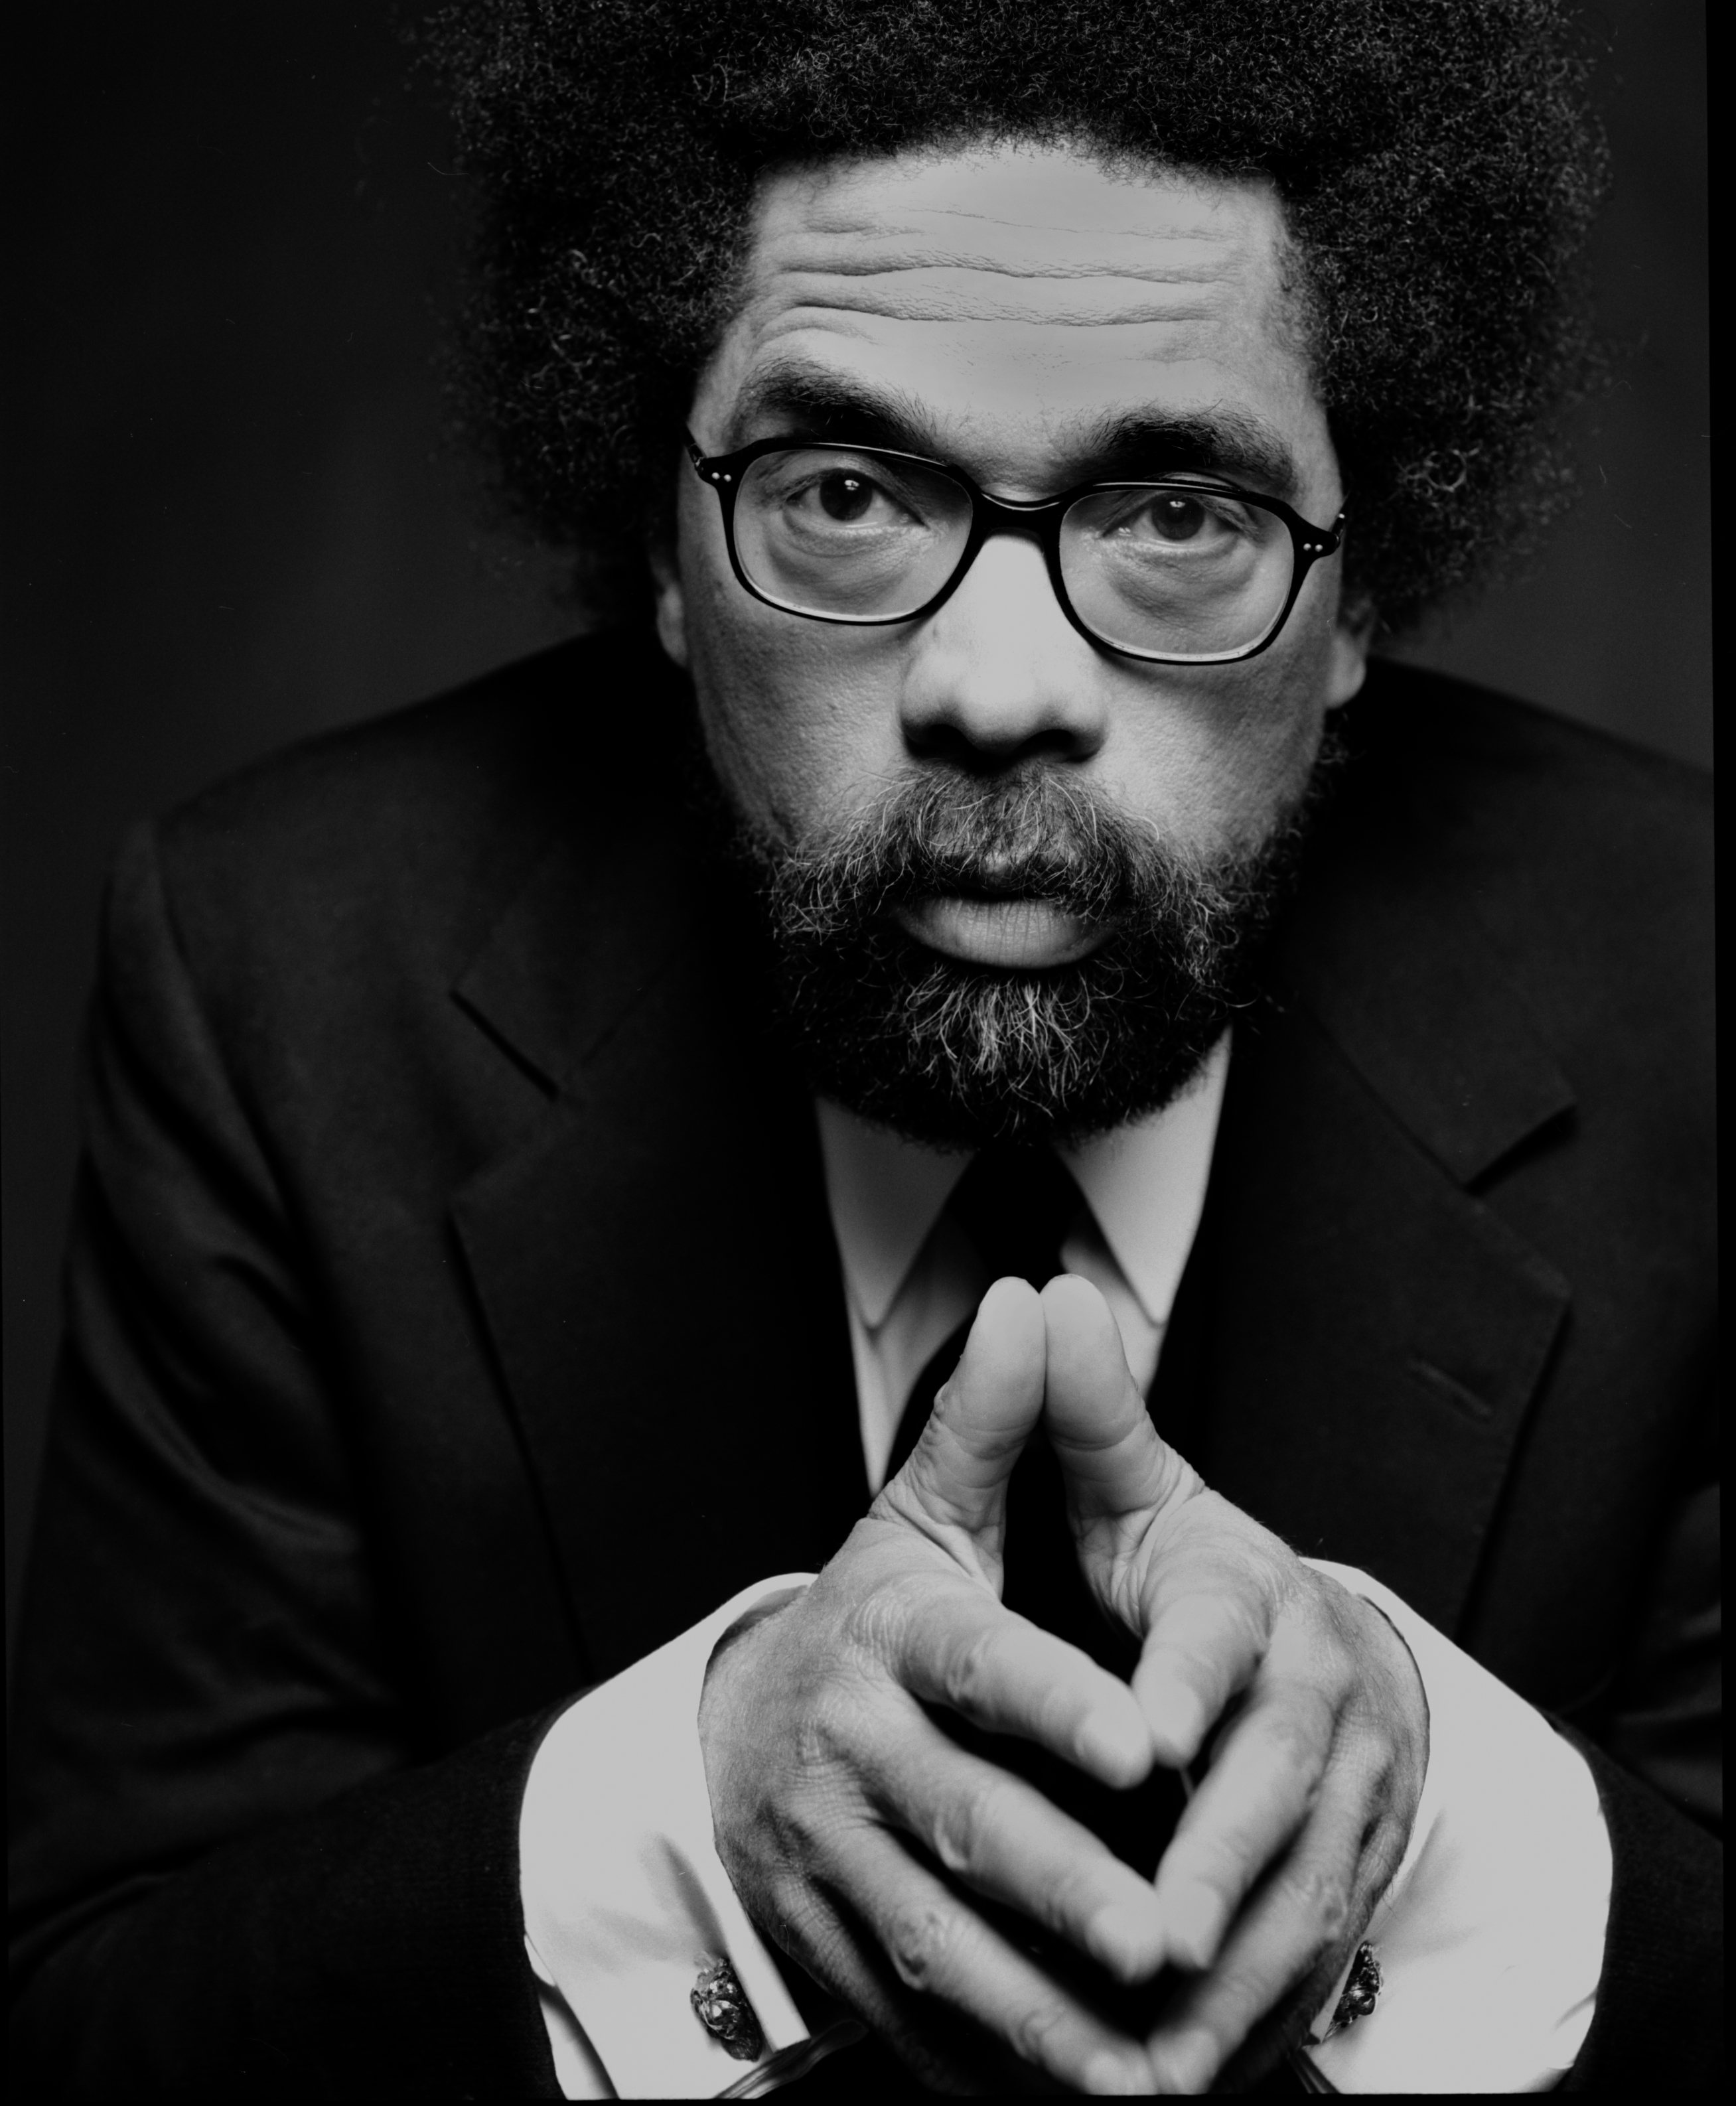 QUOTE:  Cornel West